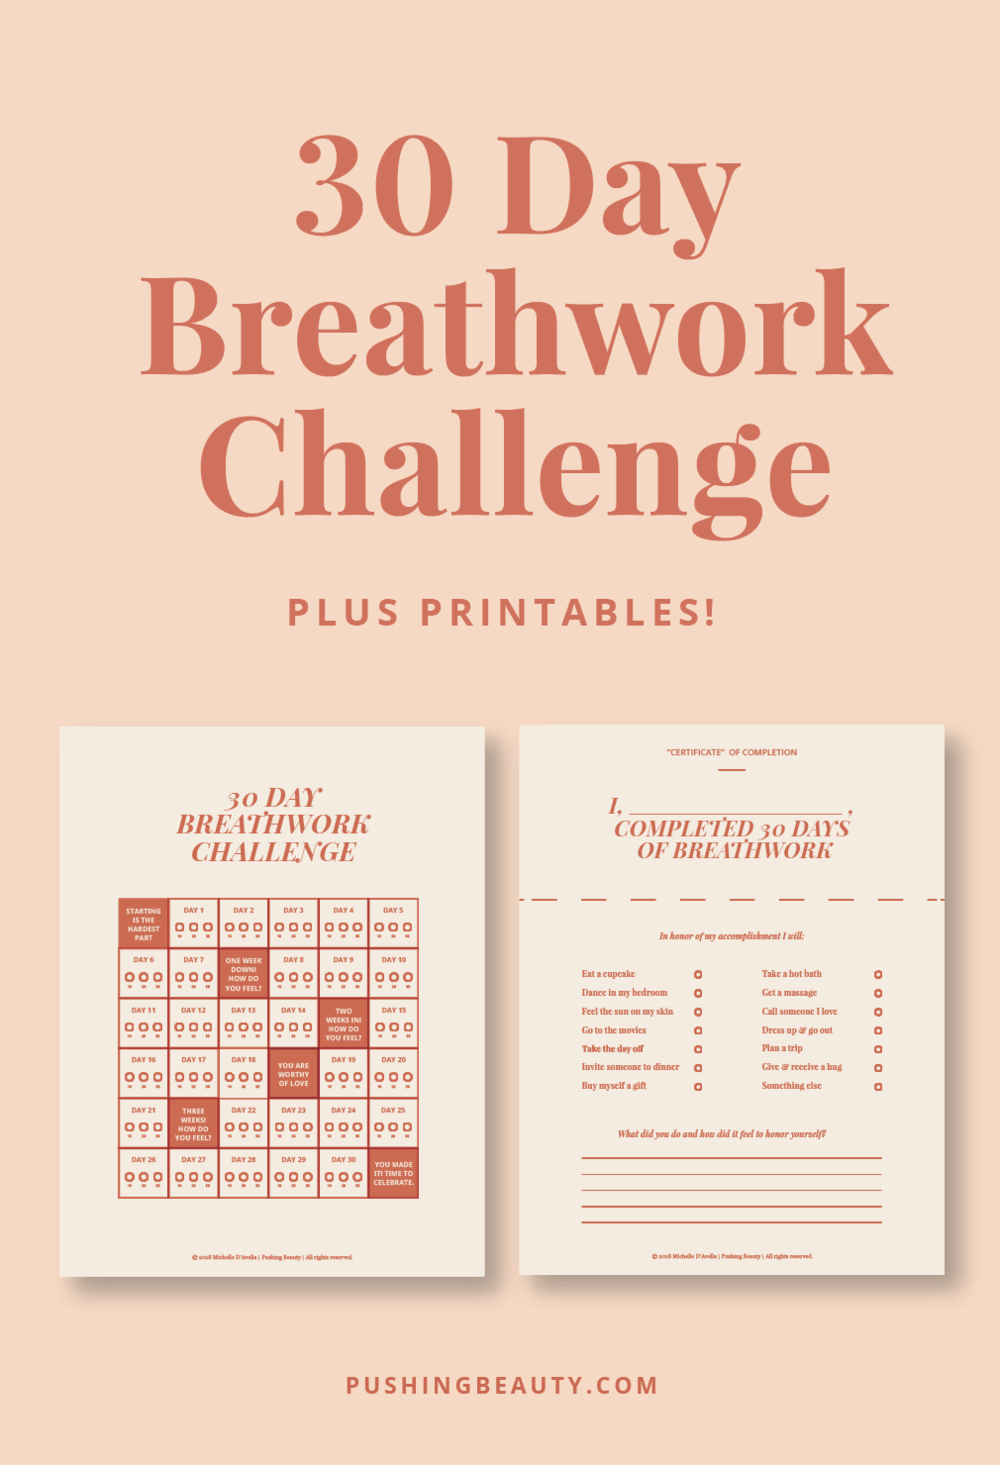 GETTING-STARTED-WITH-BREATHWORK-03.png